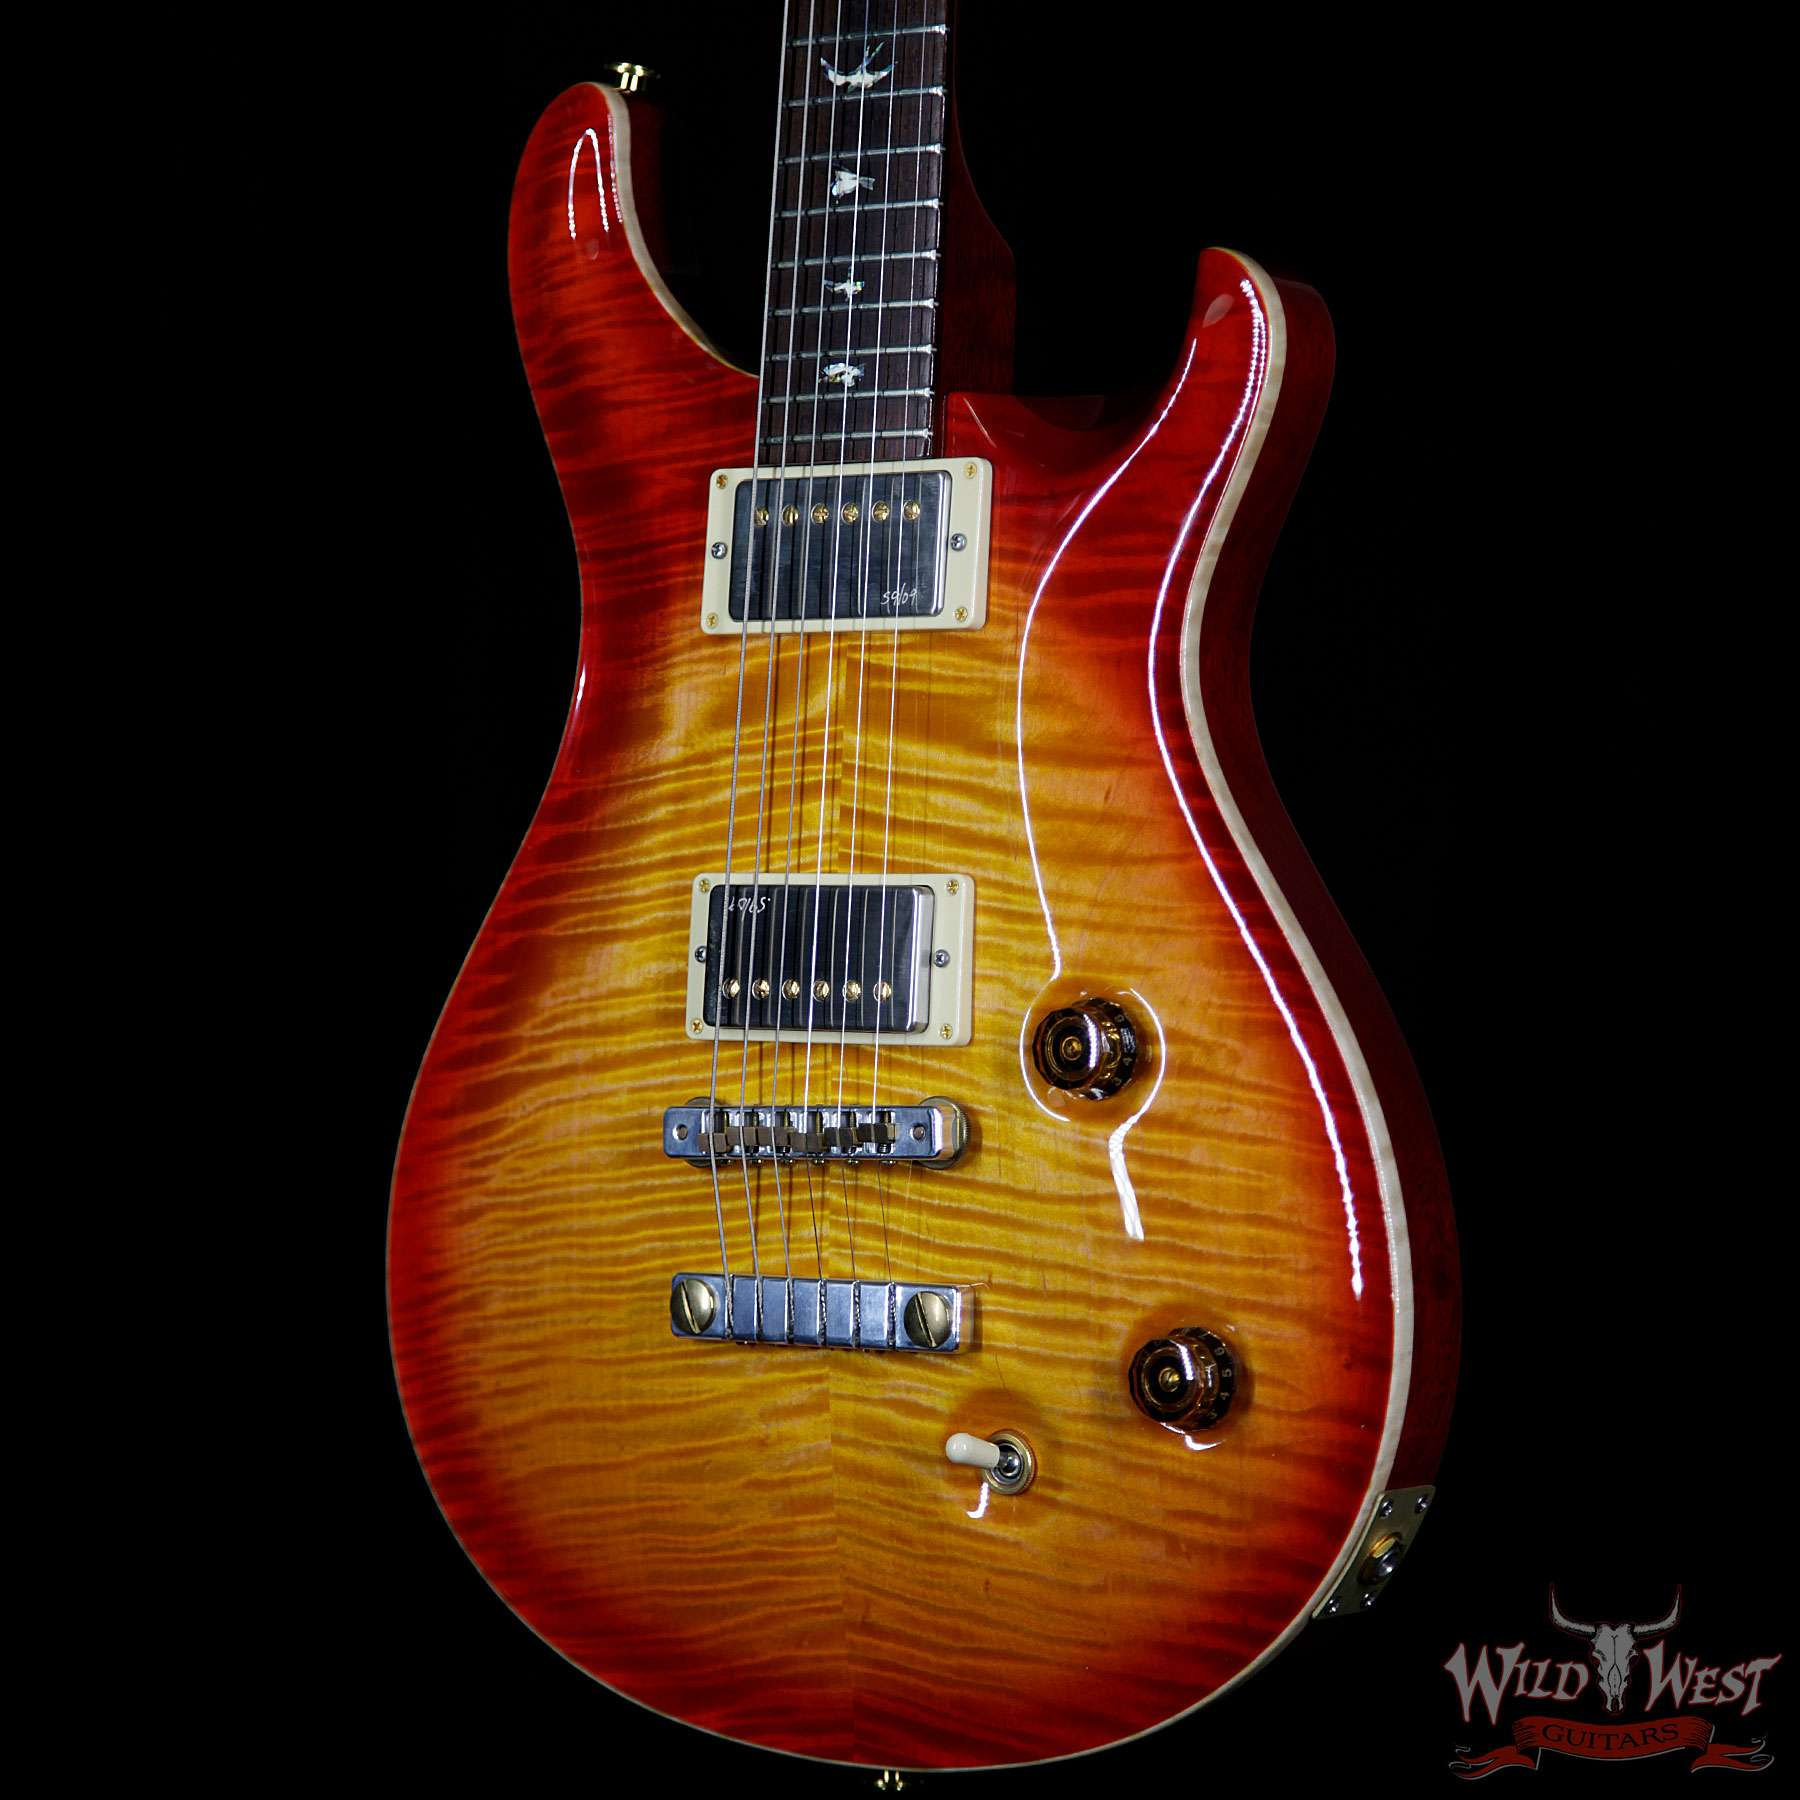 2010 prs private stock 2708 flame top custom 22 vintage cherry burst with paul reed smith. Black Bedroom Furniture Sets. Home Design Ideas